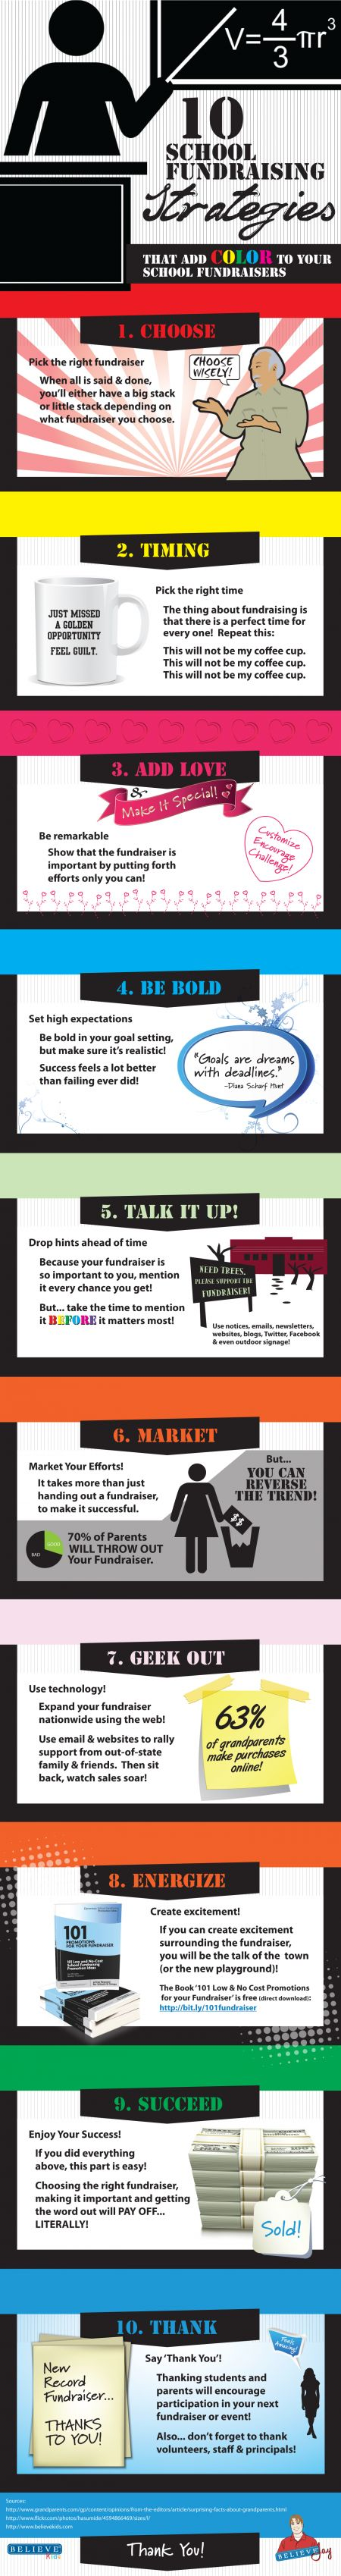 10 School Fundraising Strategies that Add Color to Your School Fundraisers... This graphic illustrates how to make the most of your school fundraiser so you can fundraise LESS but MORE EFFECTIVELY!